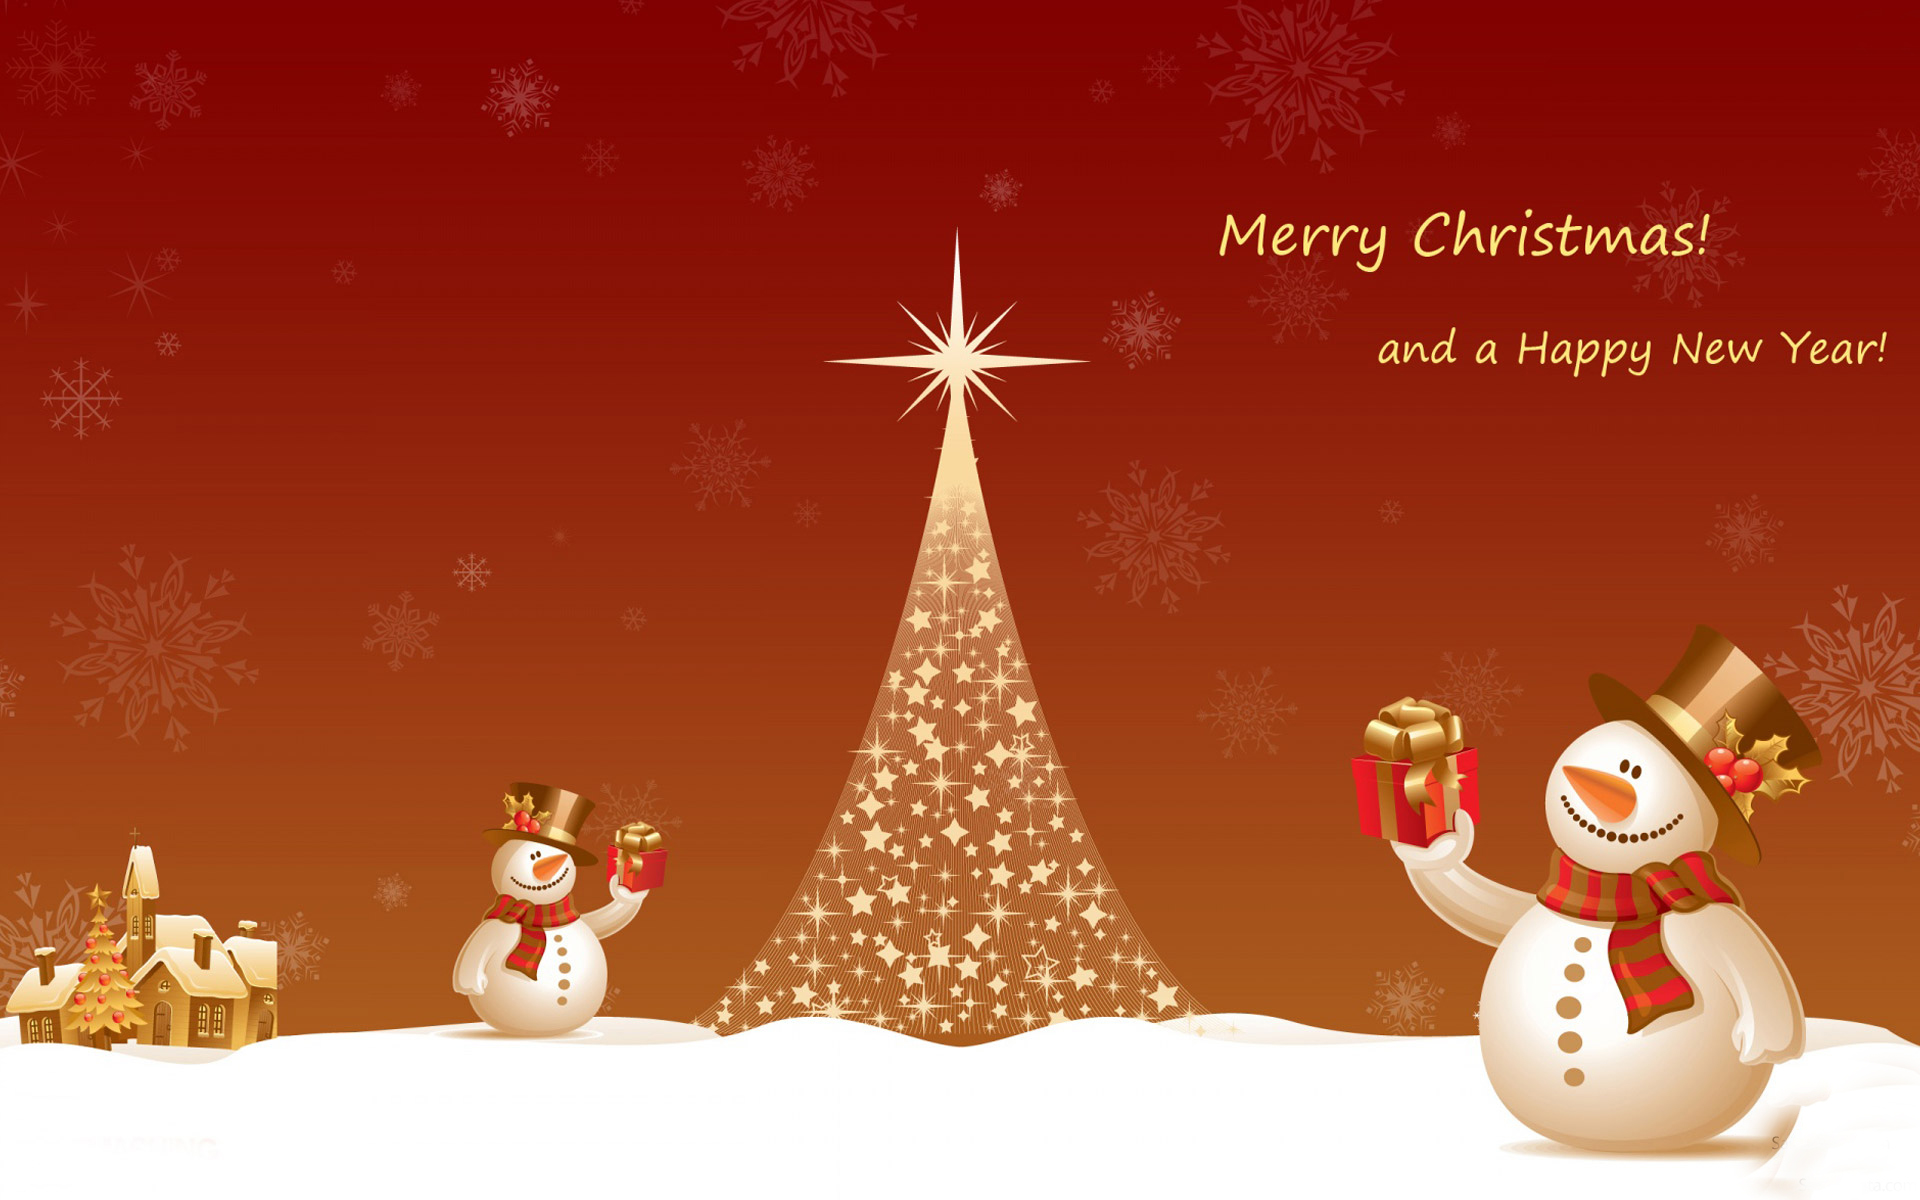 i want to wish each and every one of you a wonderful beautiful christmas and may 2017 be even better than 2016